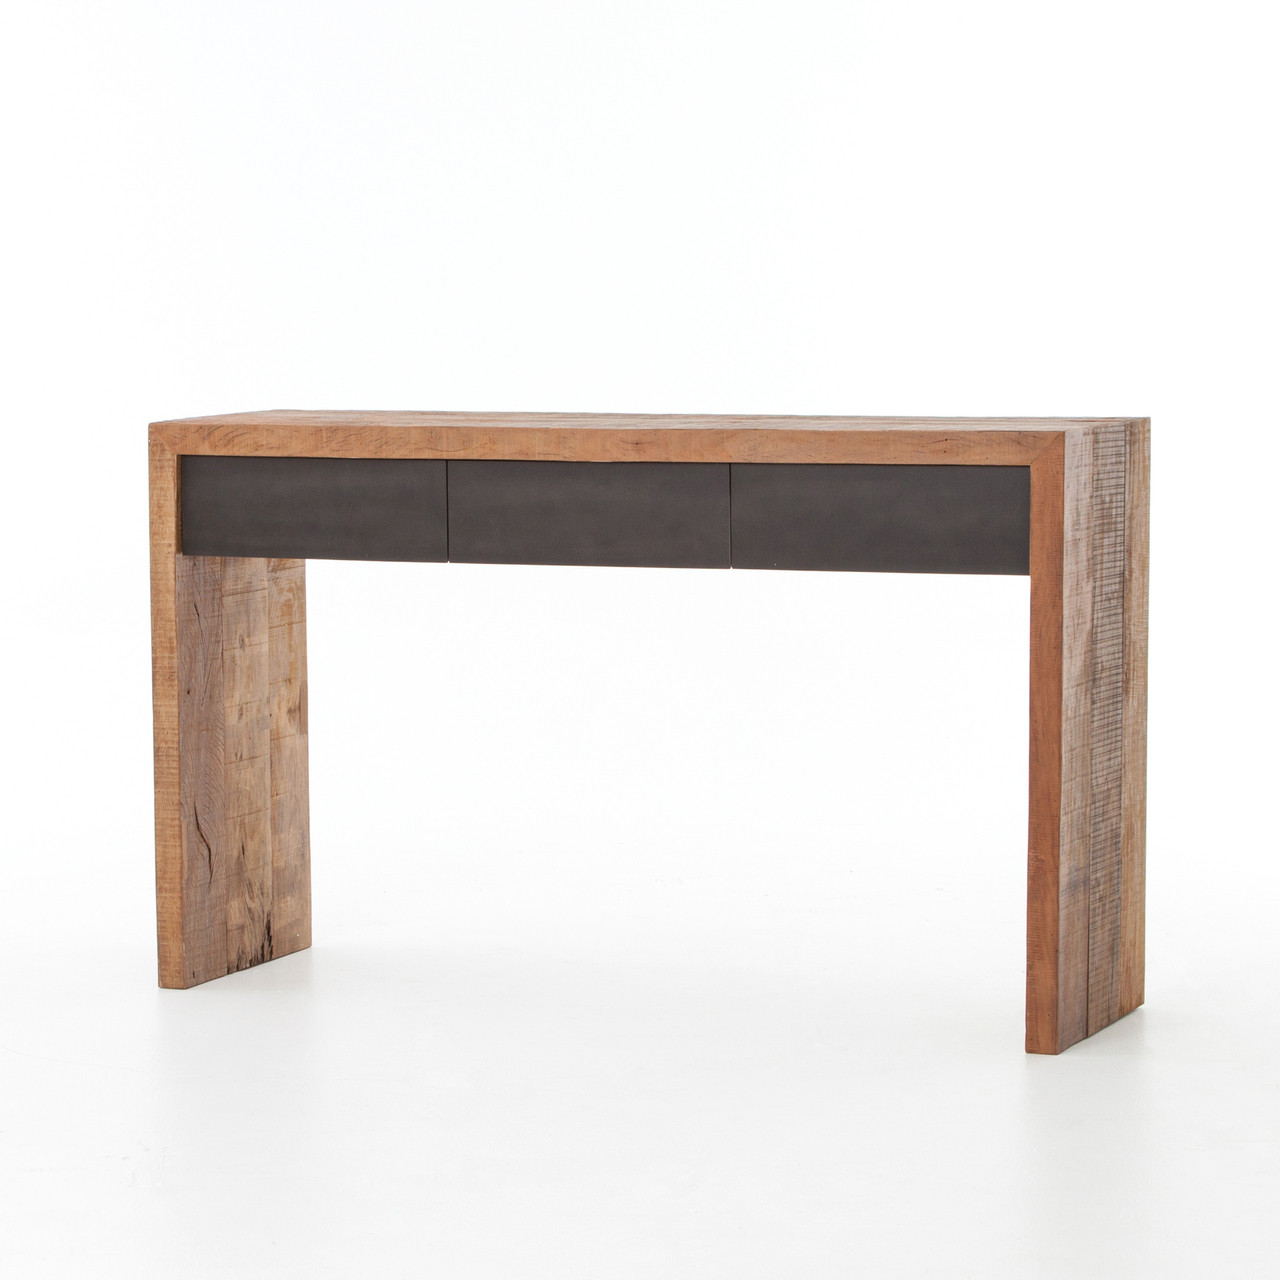 peroba wood furniture. Tylor Reclaimed Peroba Wood 3 Drawer Console Table Furniture R